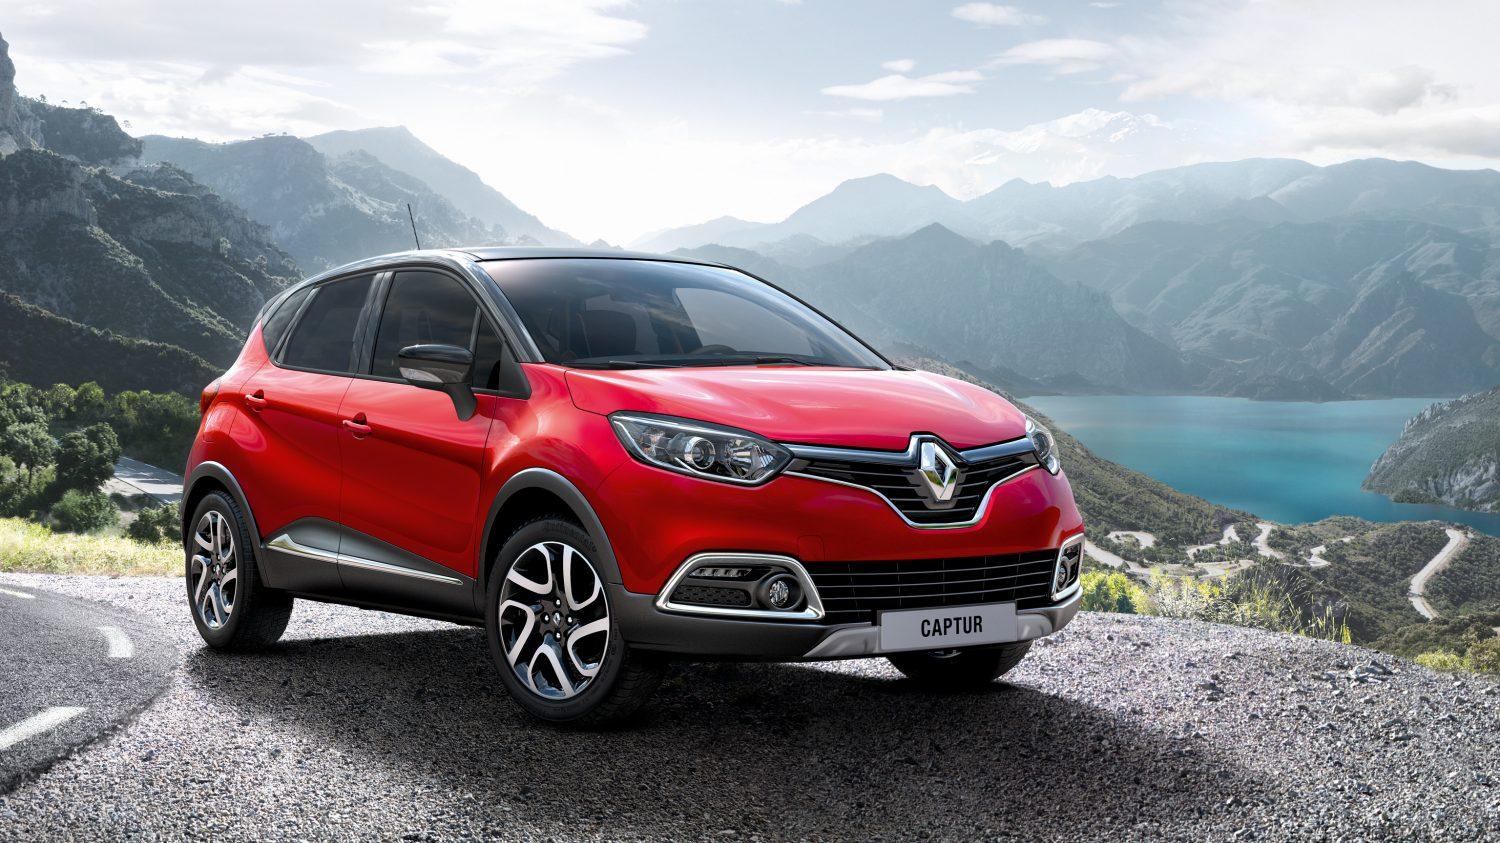 Captur-signature-mountains.jpg.ximg.l_full_m.smart.jpg